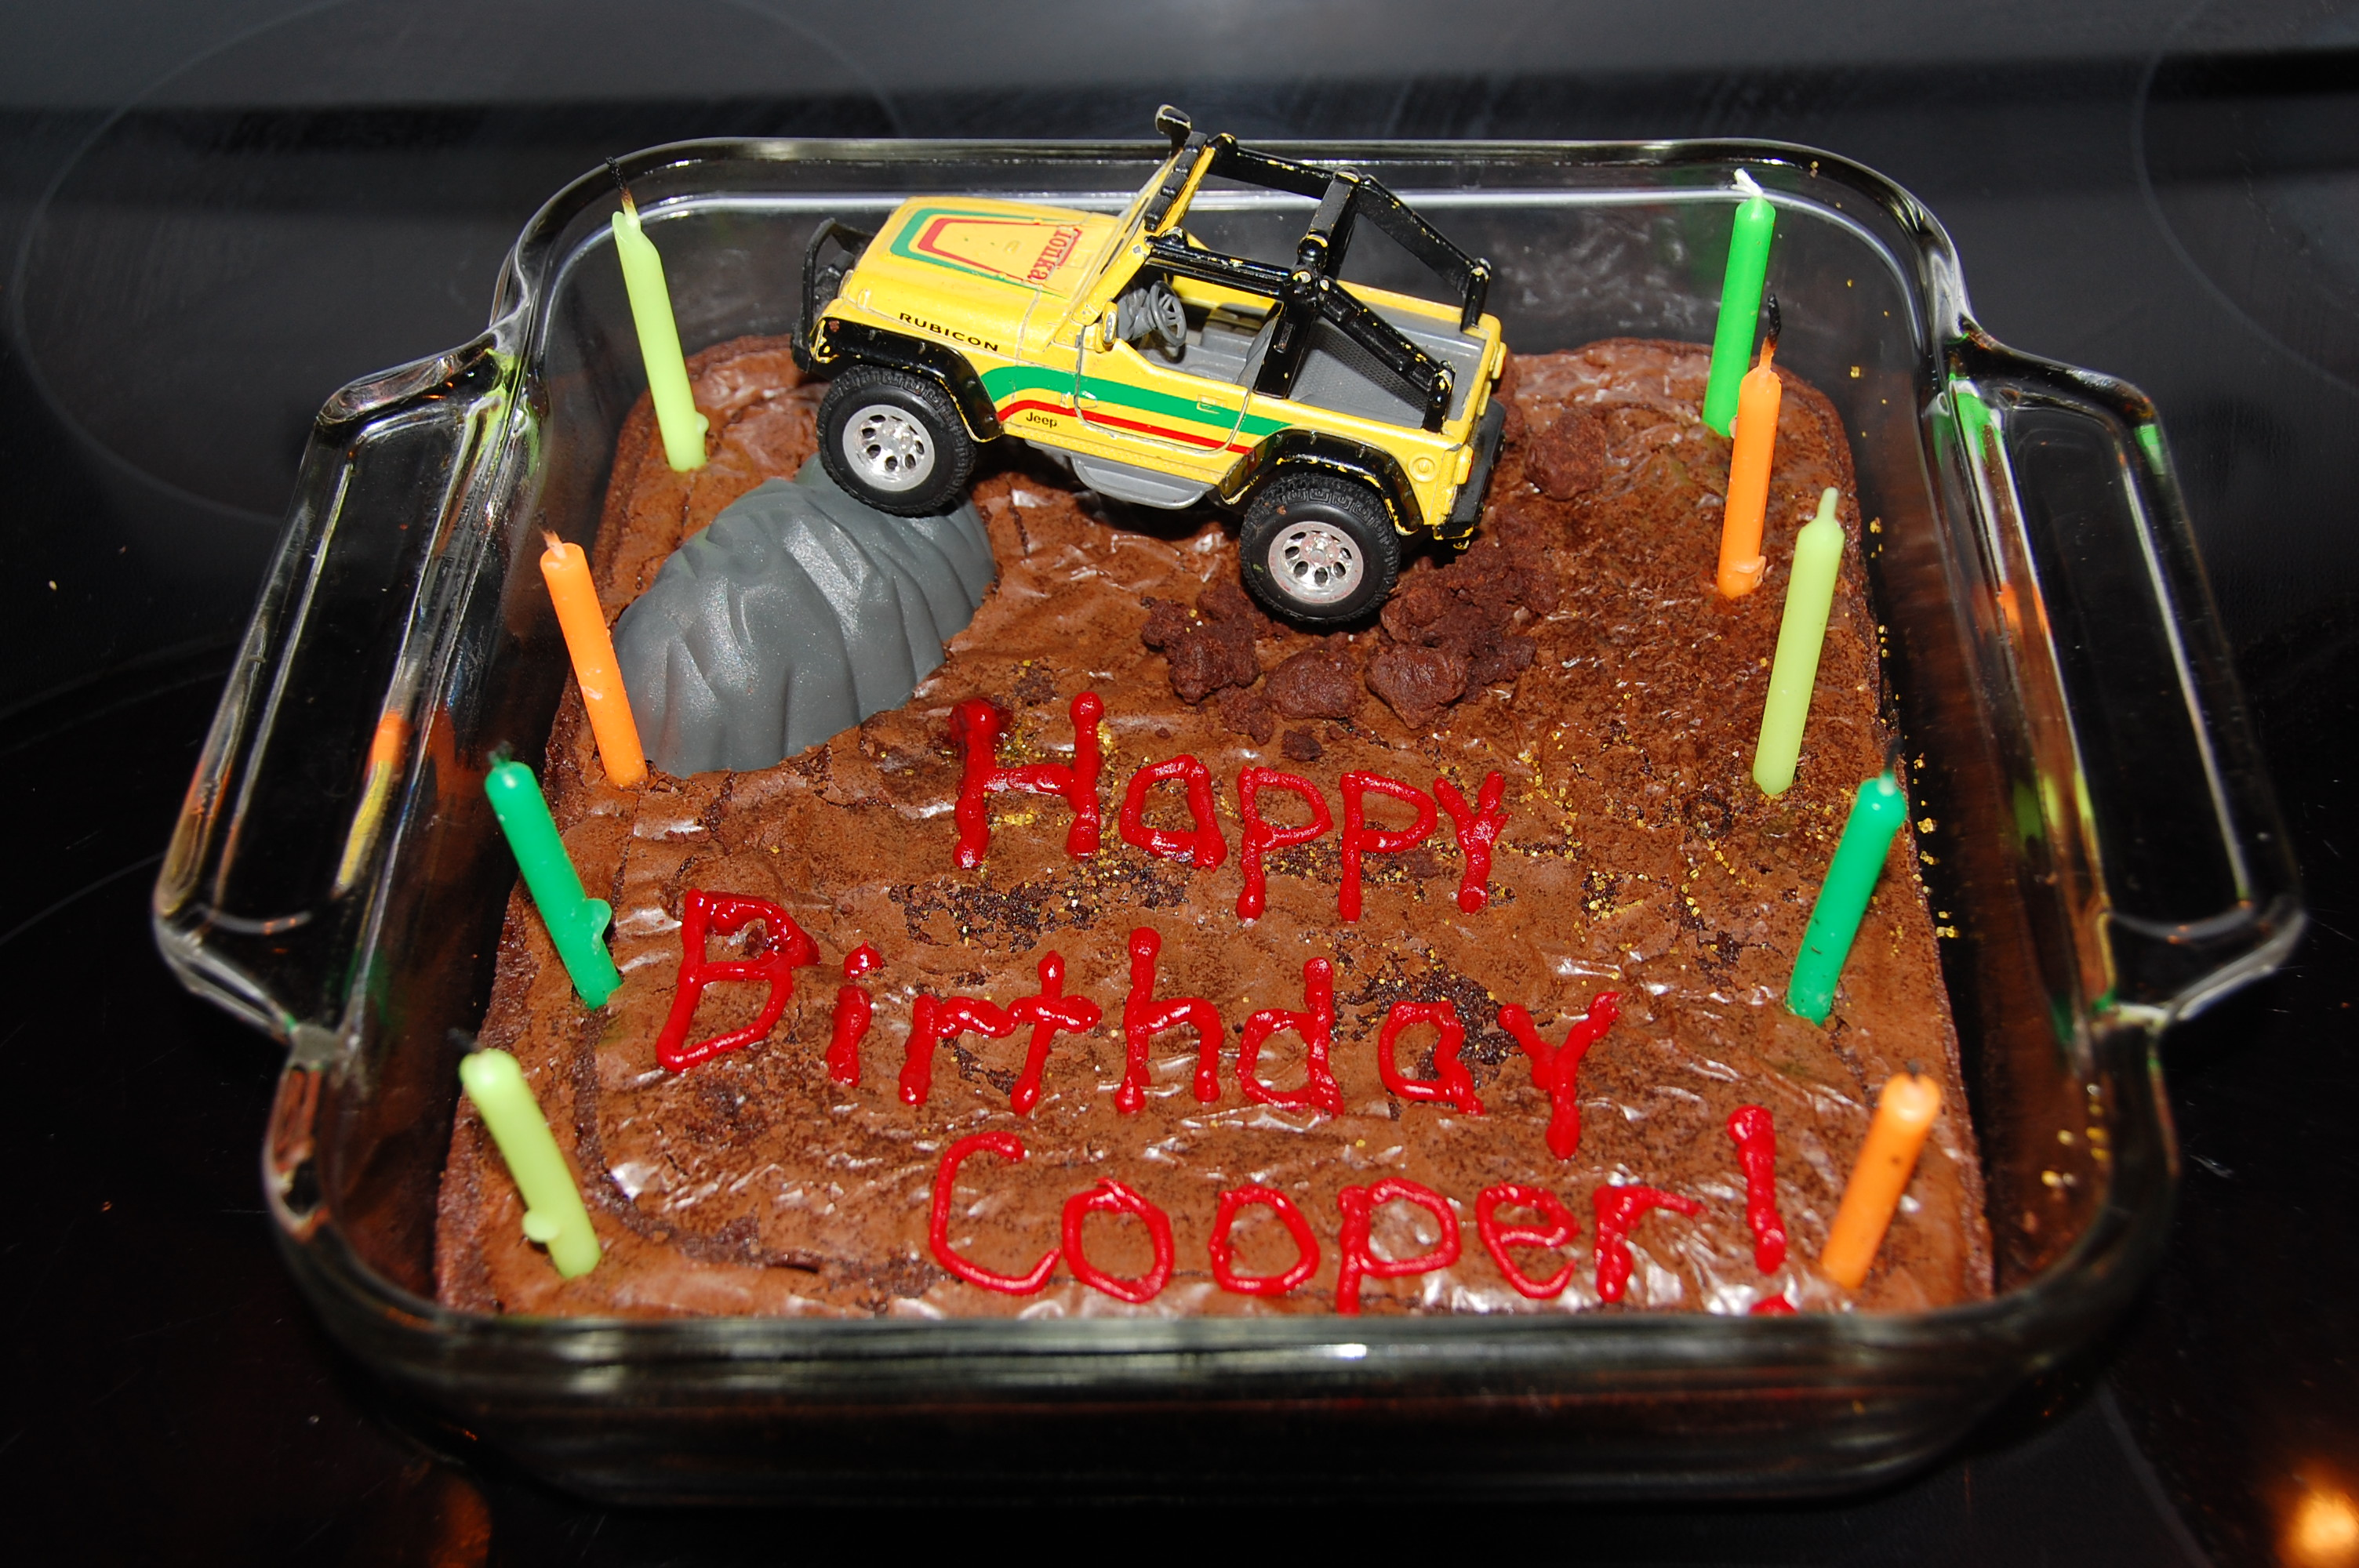 Cooper wanted a Jeep cake but wanted brownies instead of cake. That was just fine with me. SUPER SIMPLE!